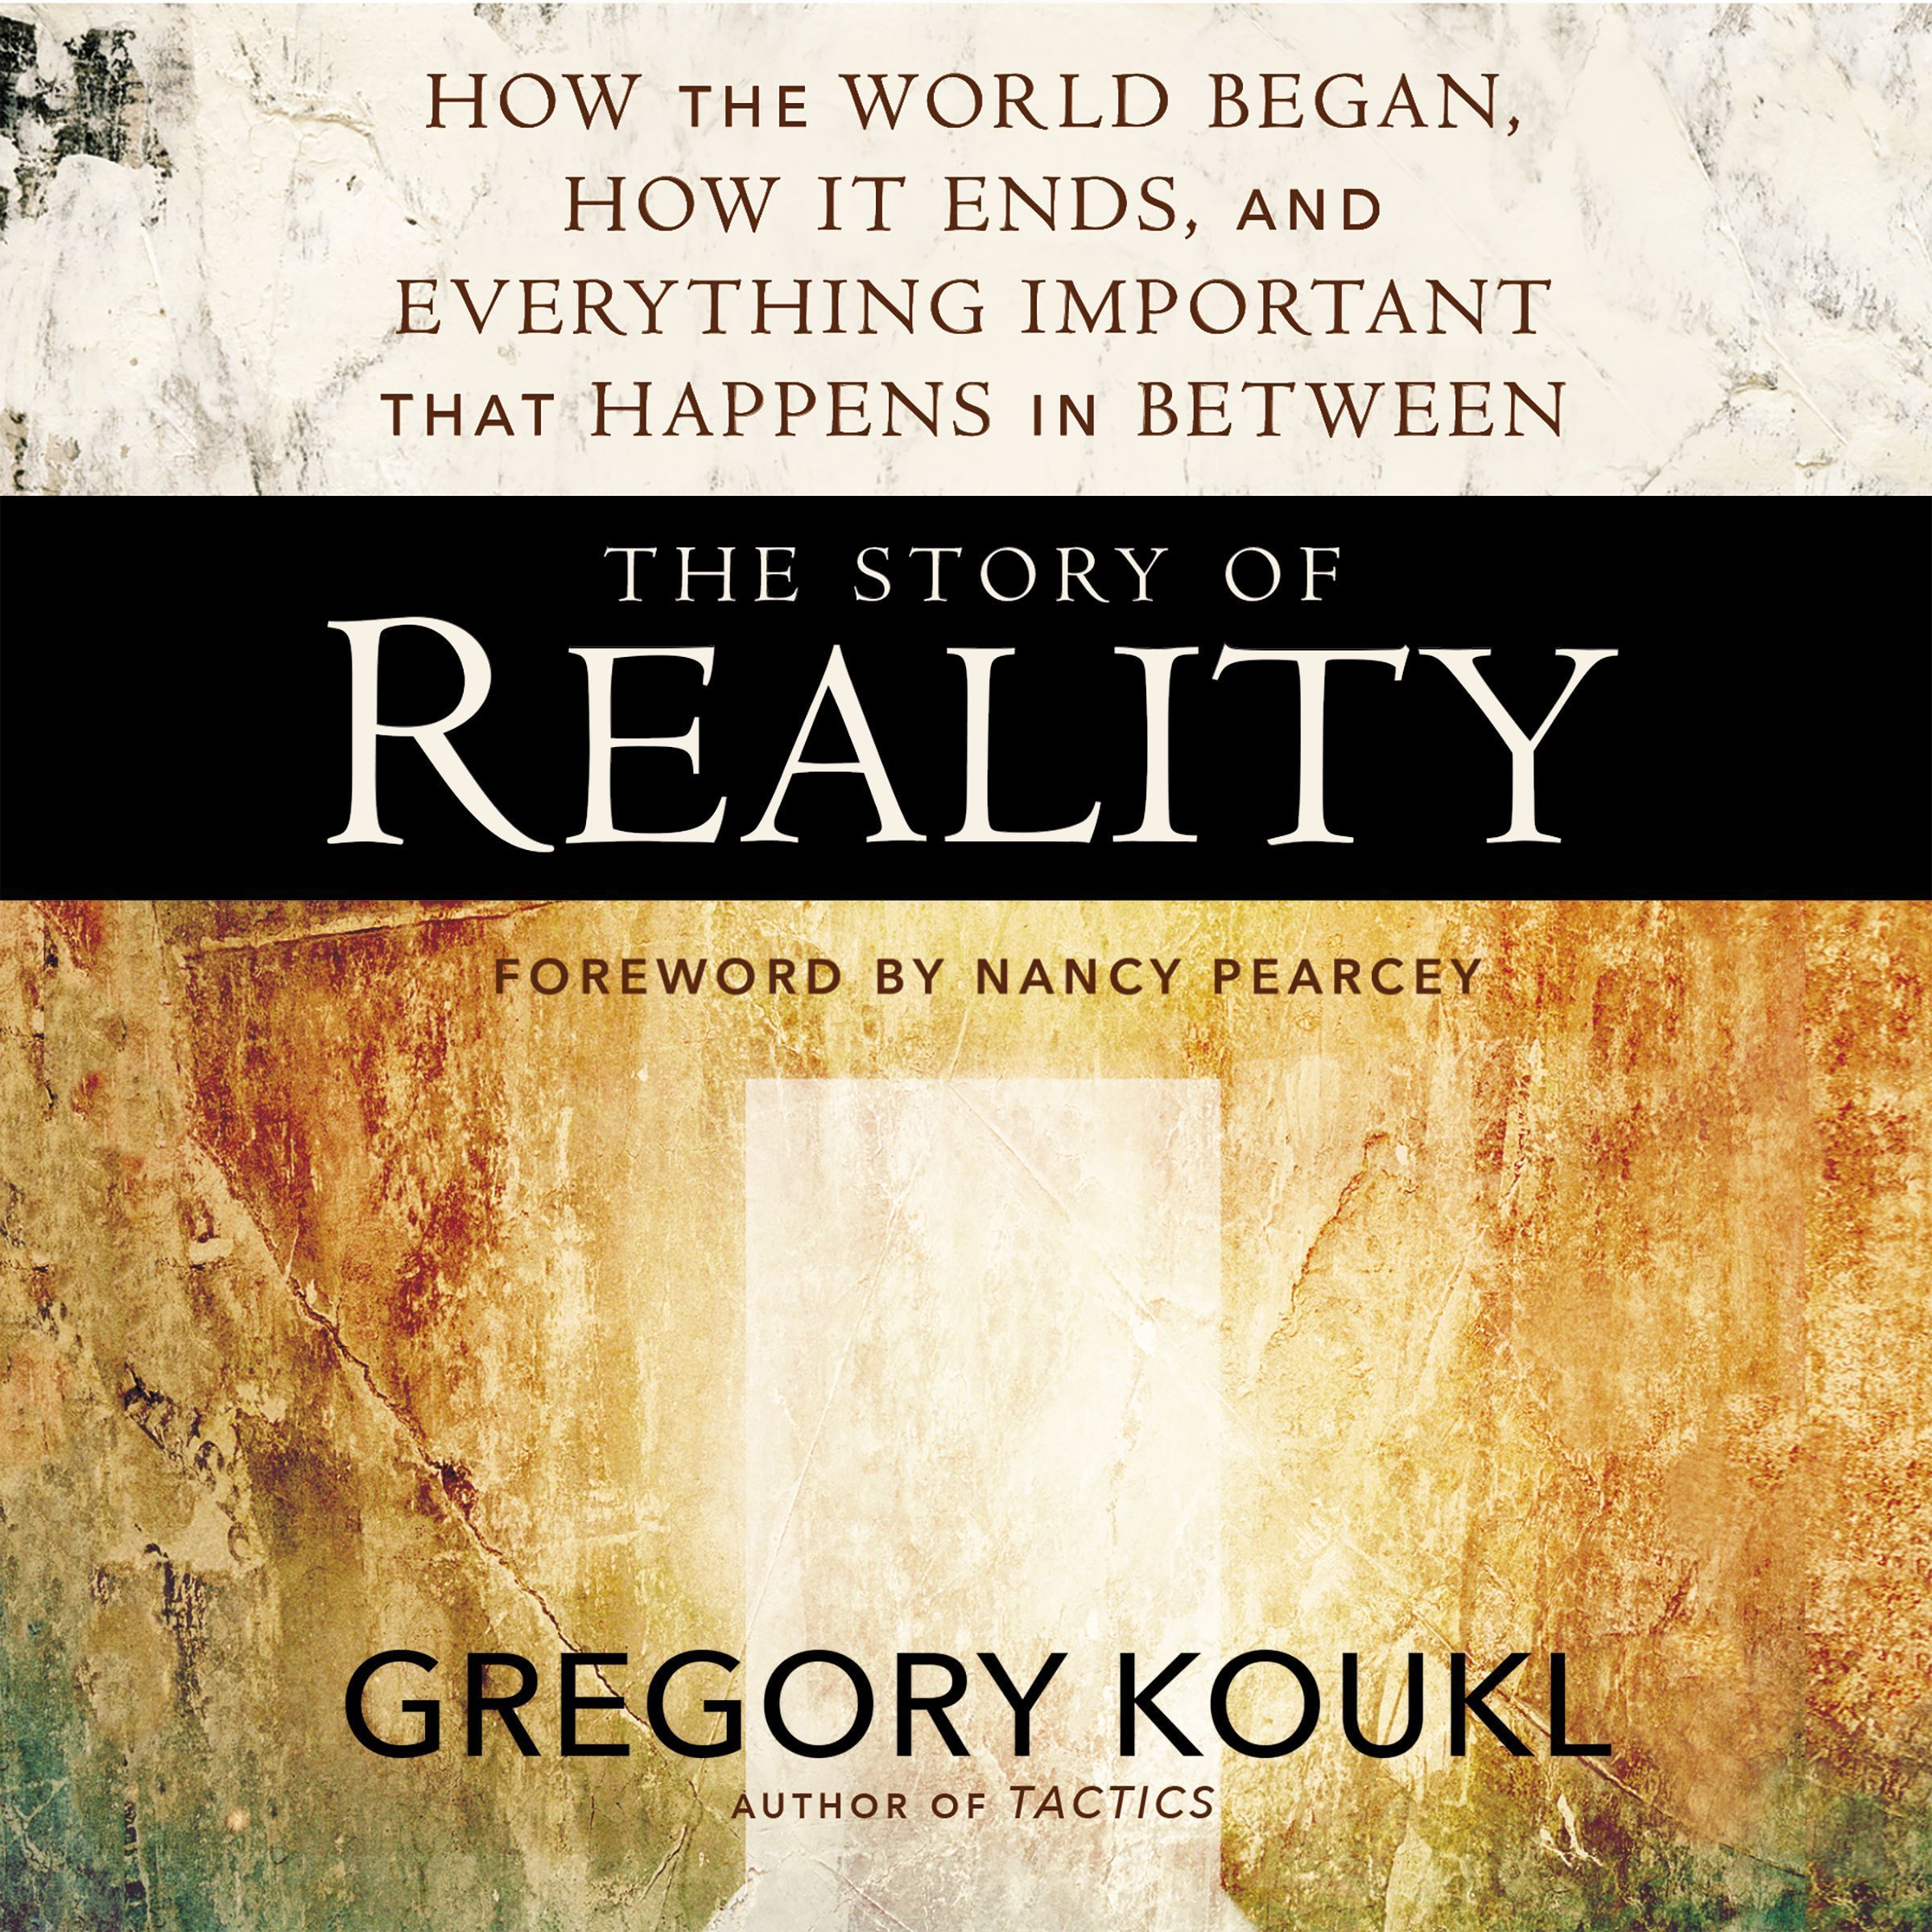 Printable The Story of Reality: How the World Began, How It Ends, and Everything Important that Happens in Between Audiobook Cover Art